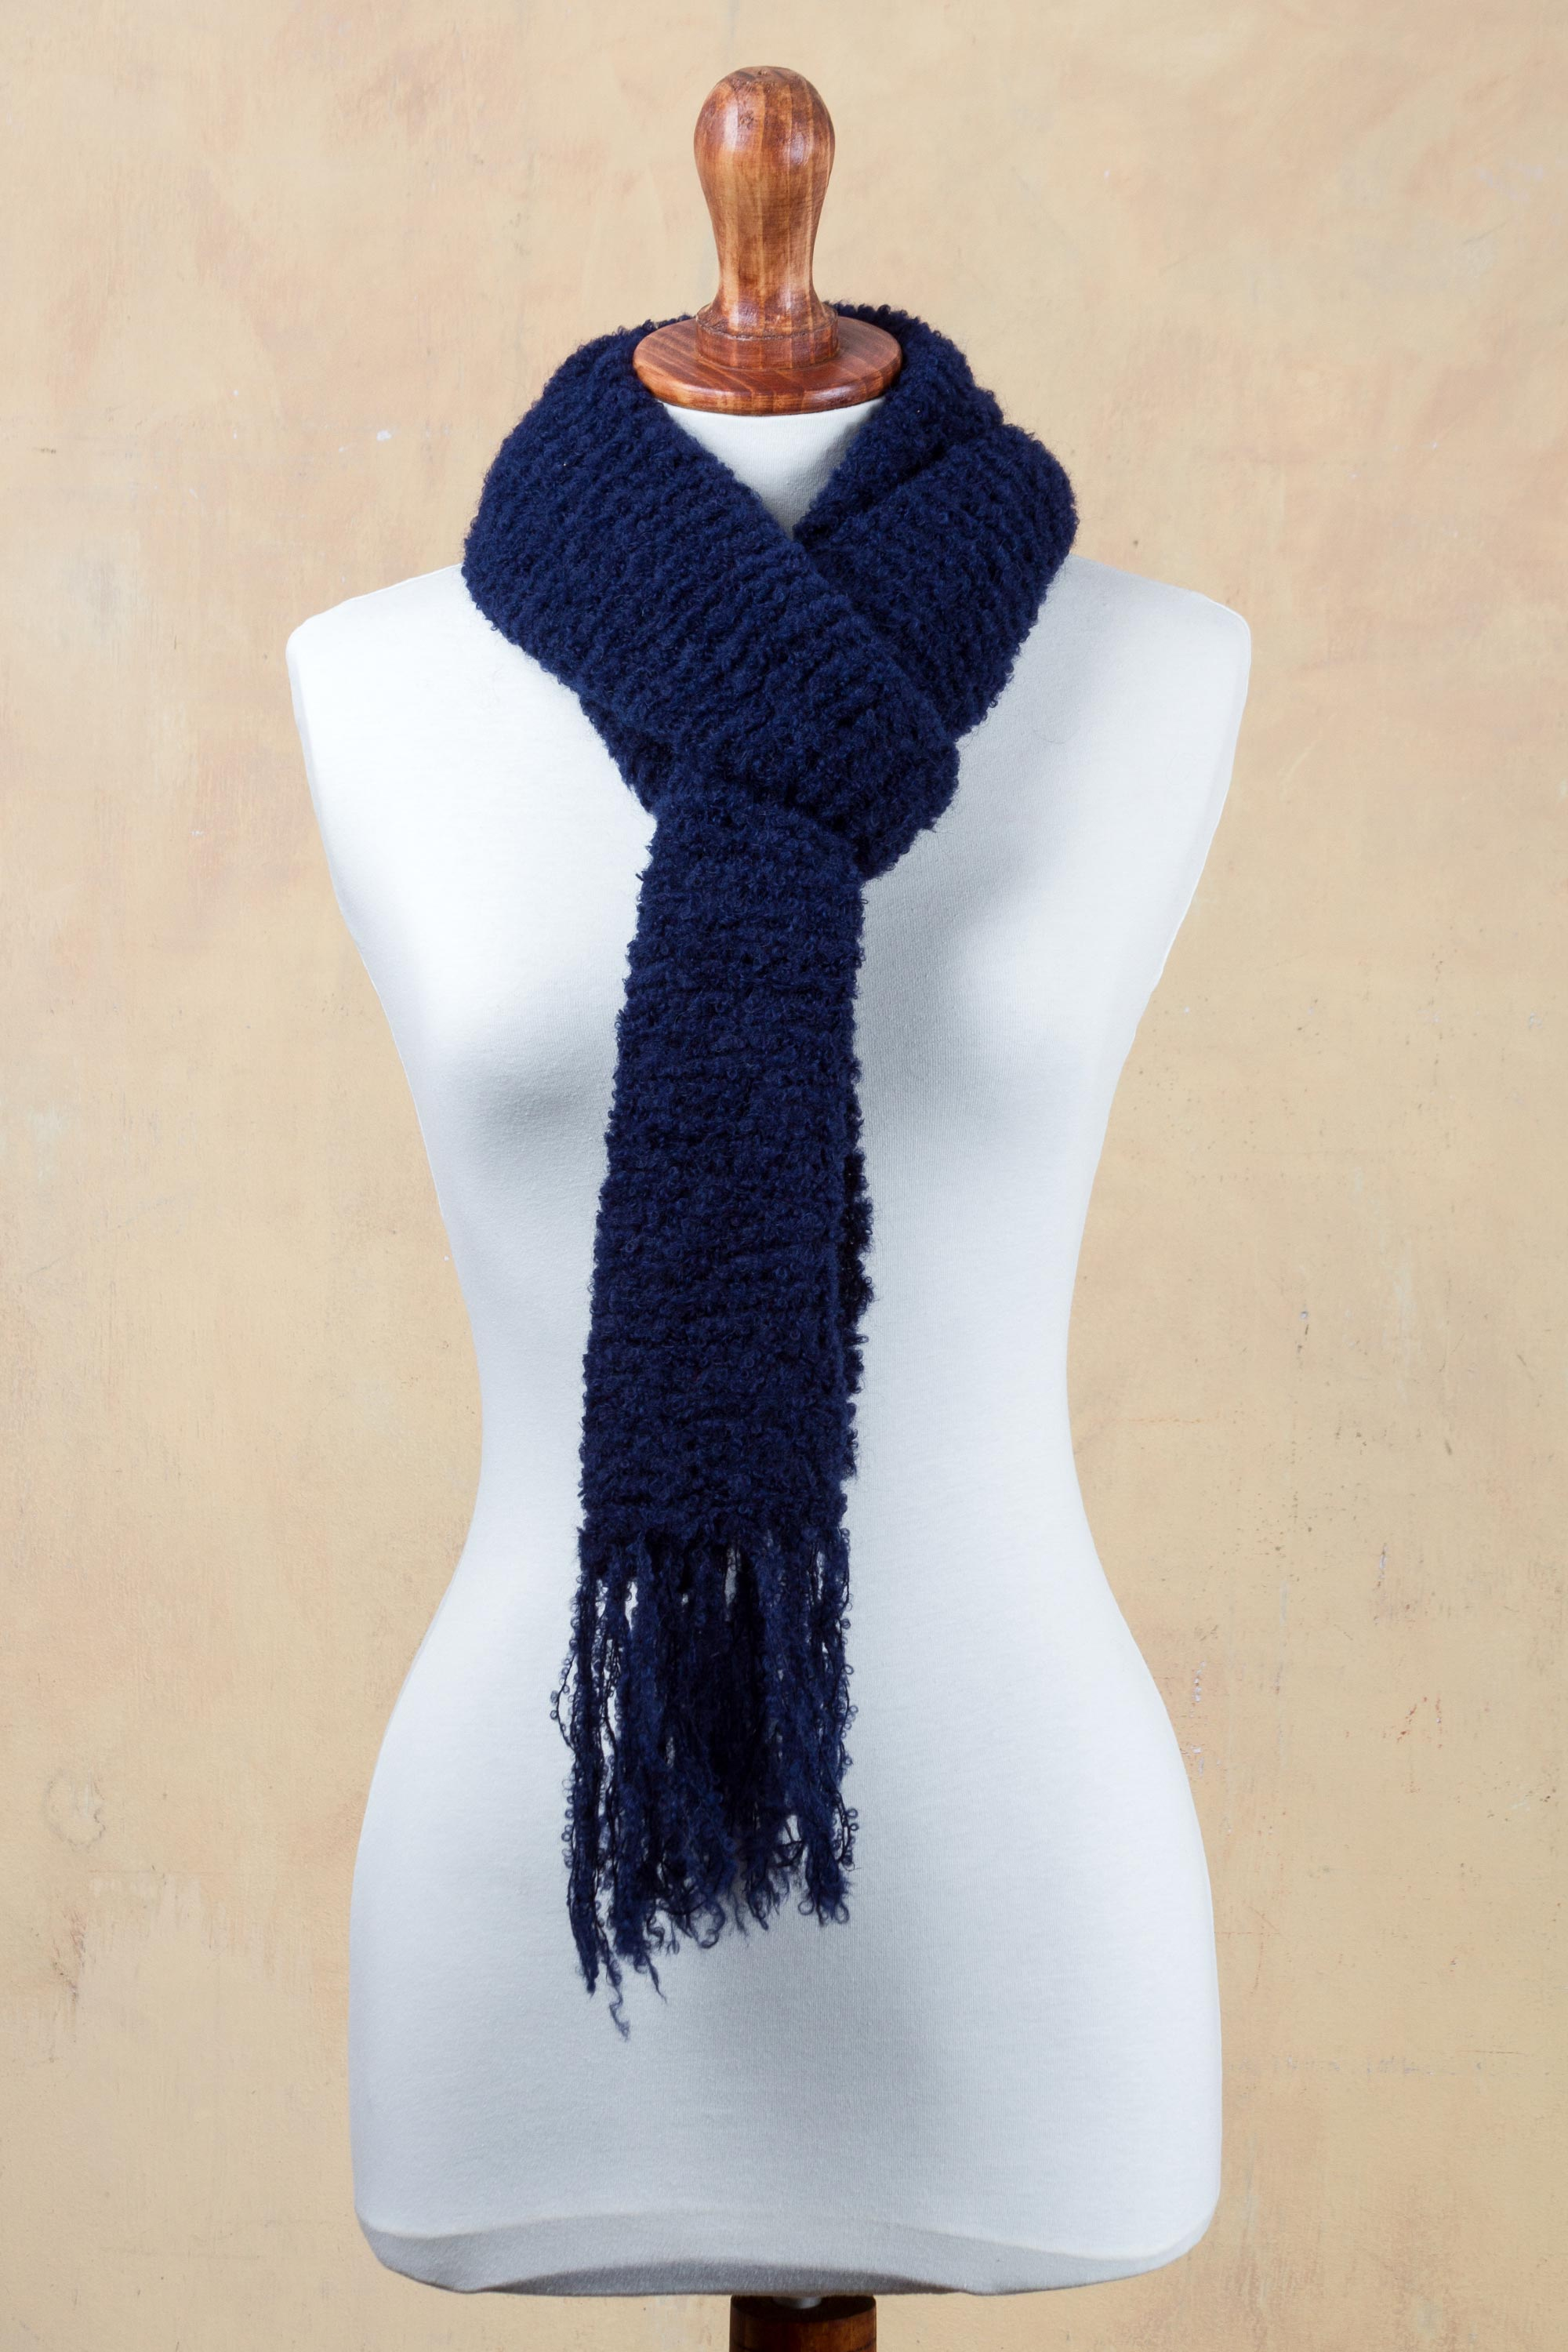 Indigo Color Scarf Knitted by Hand with Soft Alpaca Wool, 'Indigo Story' Scarf and Shawl Styles